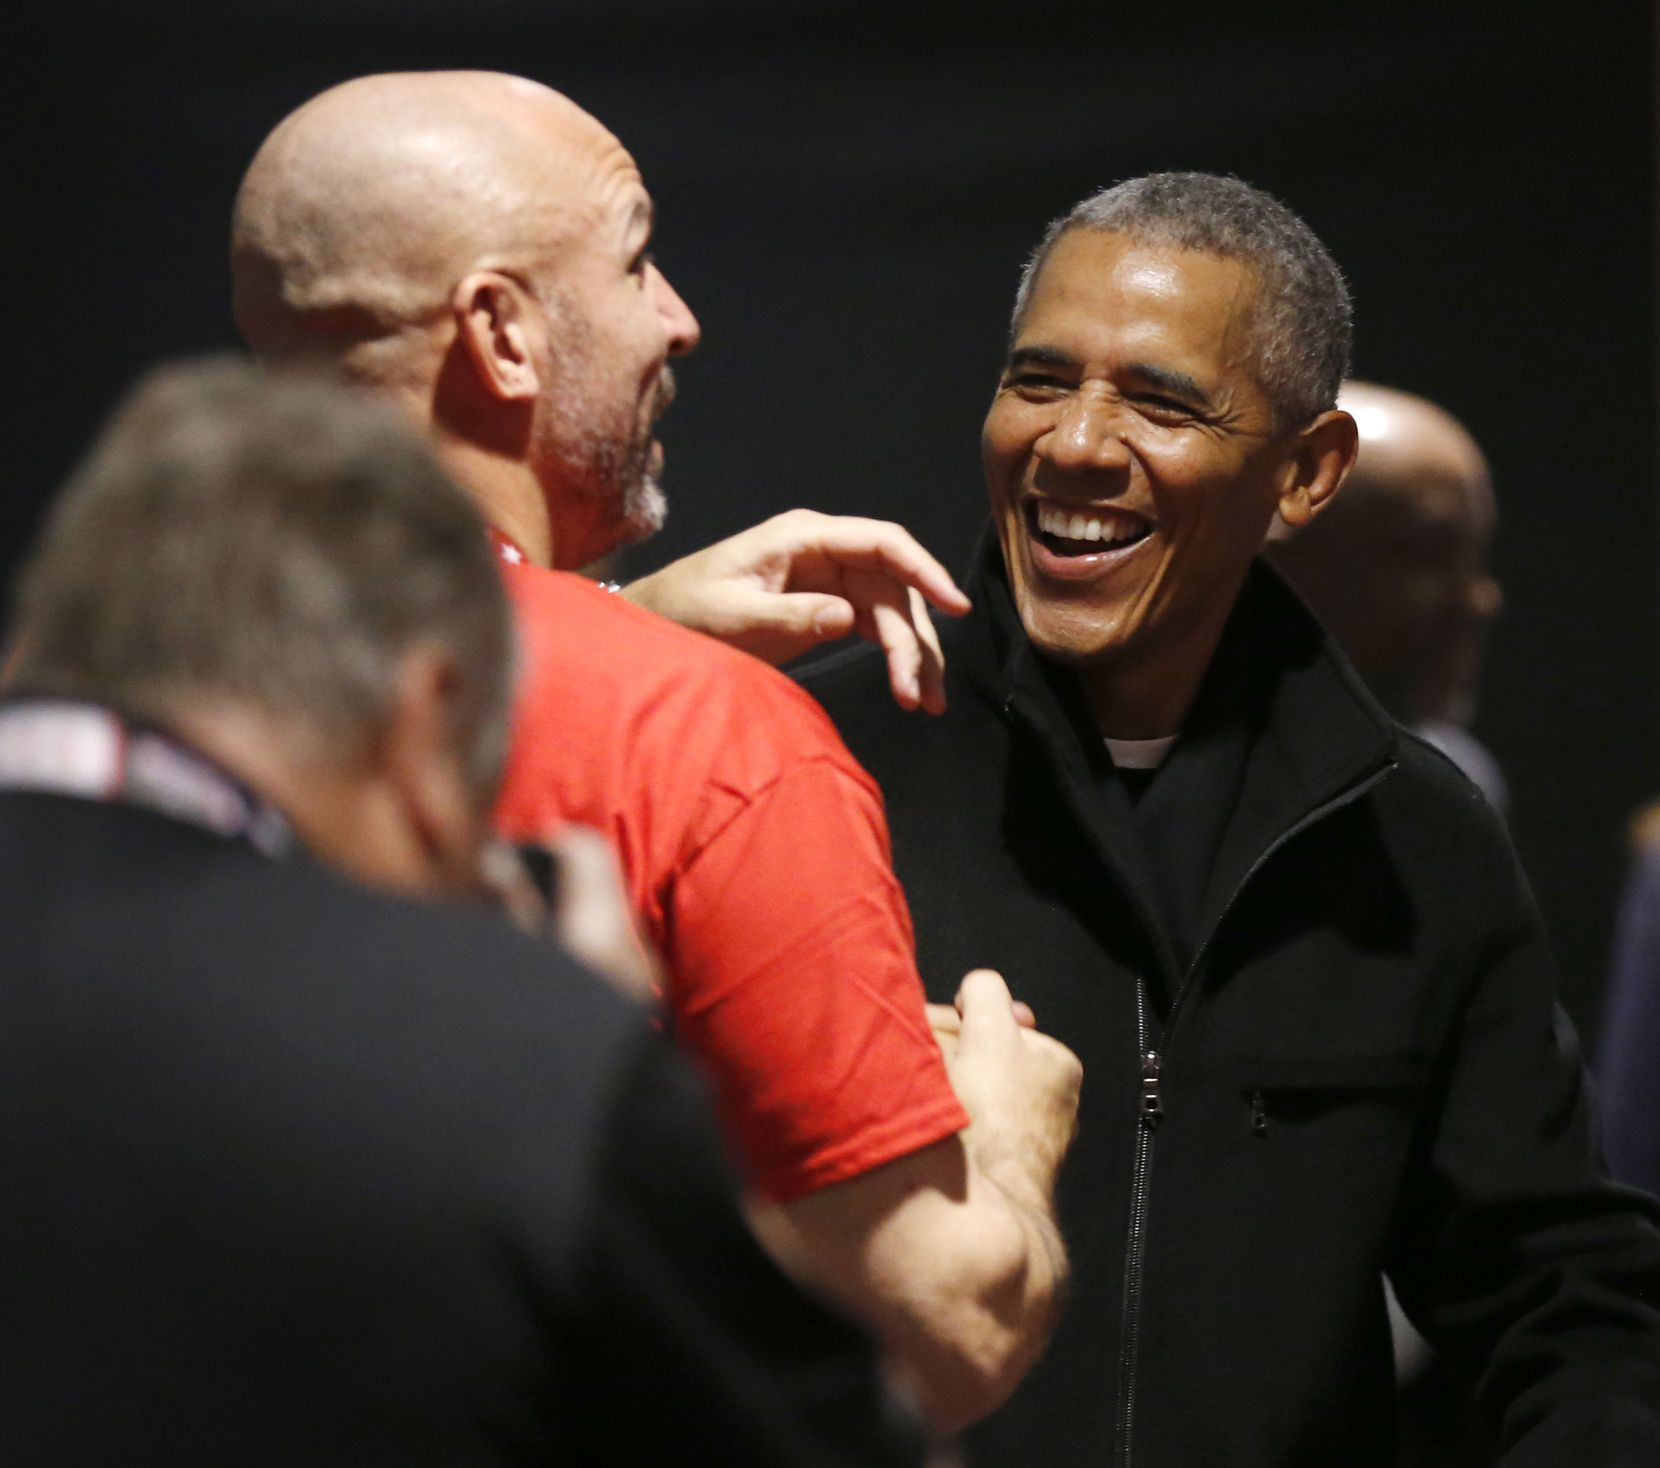 Former President Barack Obama jokes with Los Angeles Lakers assistant coach Jason Kidd as he talks about Dallas Mavericks forward Luka Doncic (77) during a NBA Cares Day of Service event during NBA All Star 2020 at Wintrust Arena in Chicago on Friday, February 14, 2020.